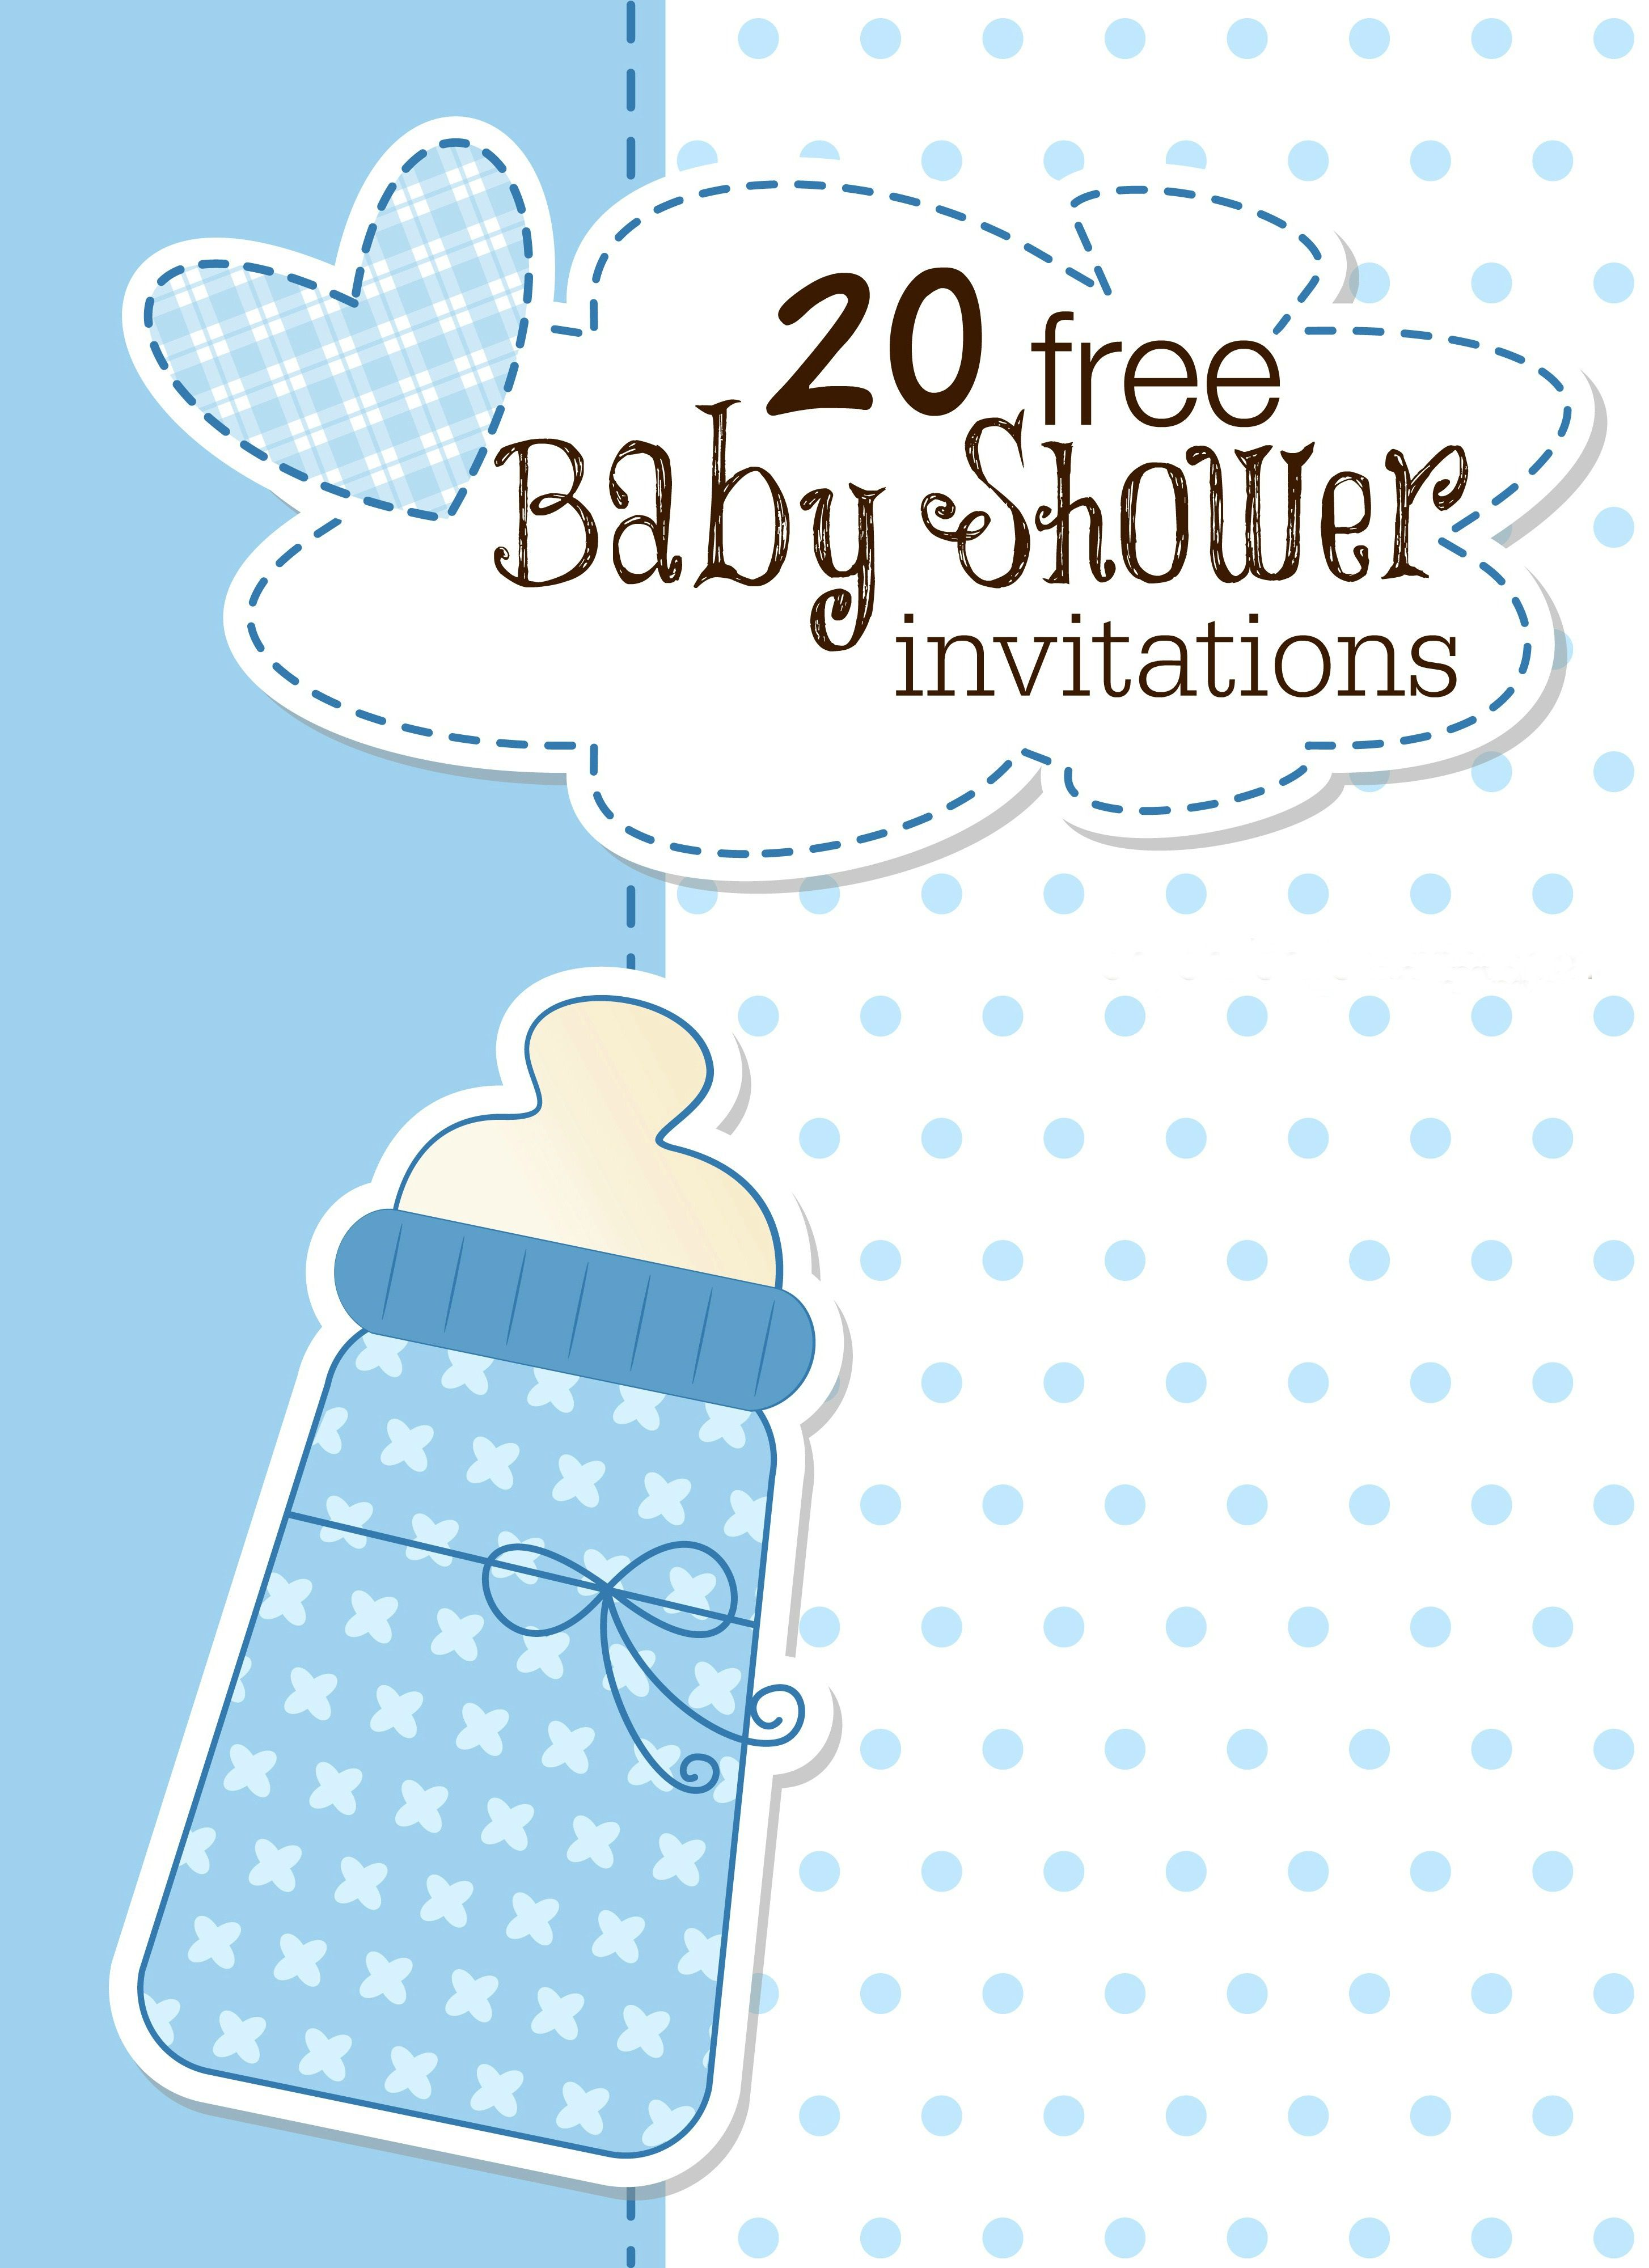 009 Awesome Baby Shower Card Design Free Photo  Template Microsoft Word Boy DownloadFull